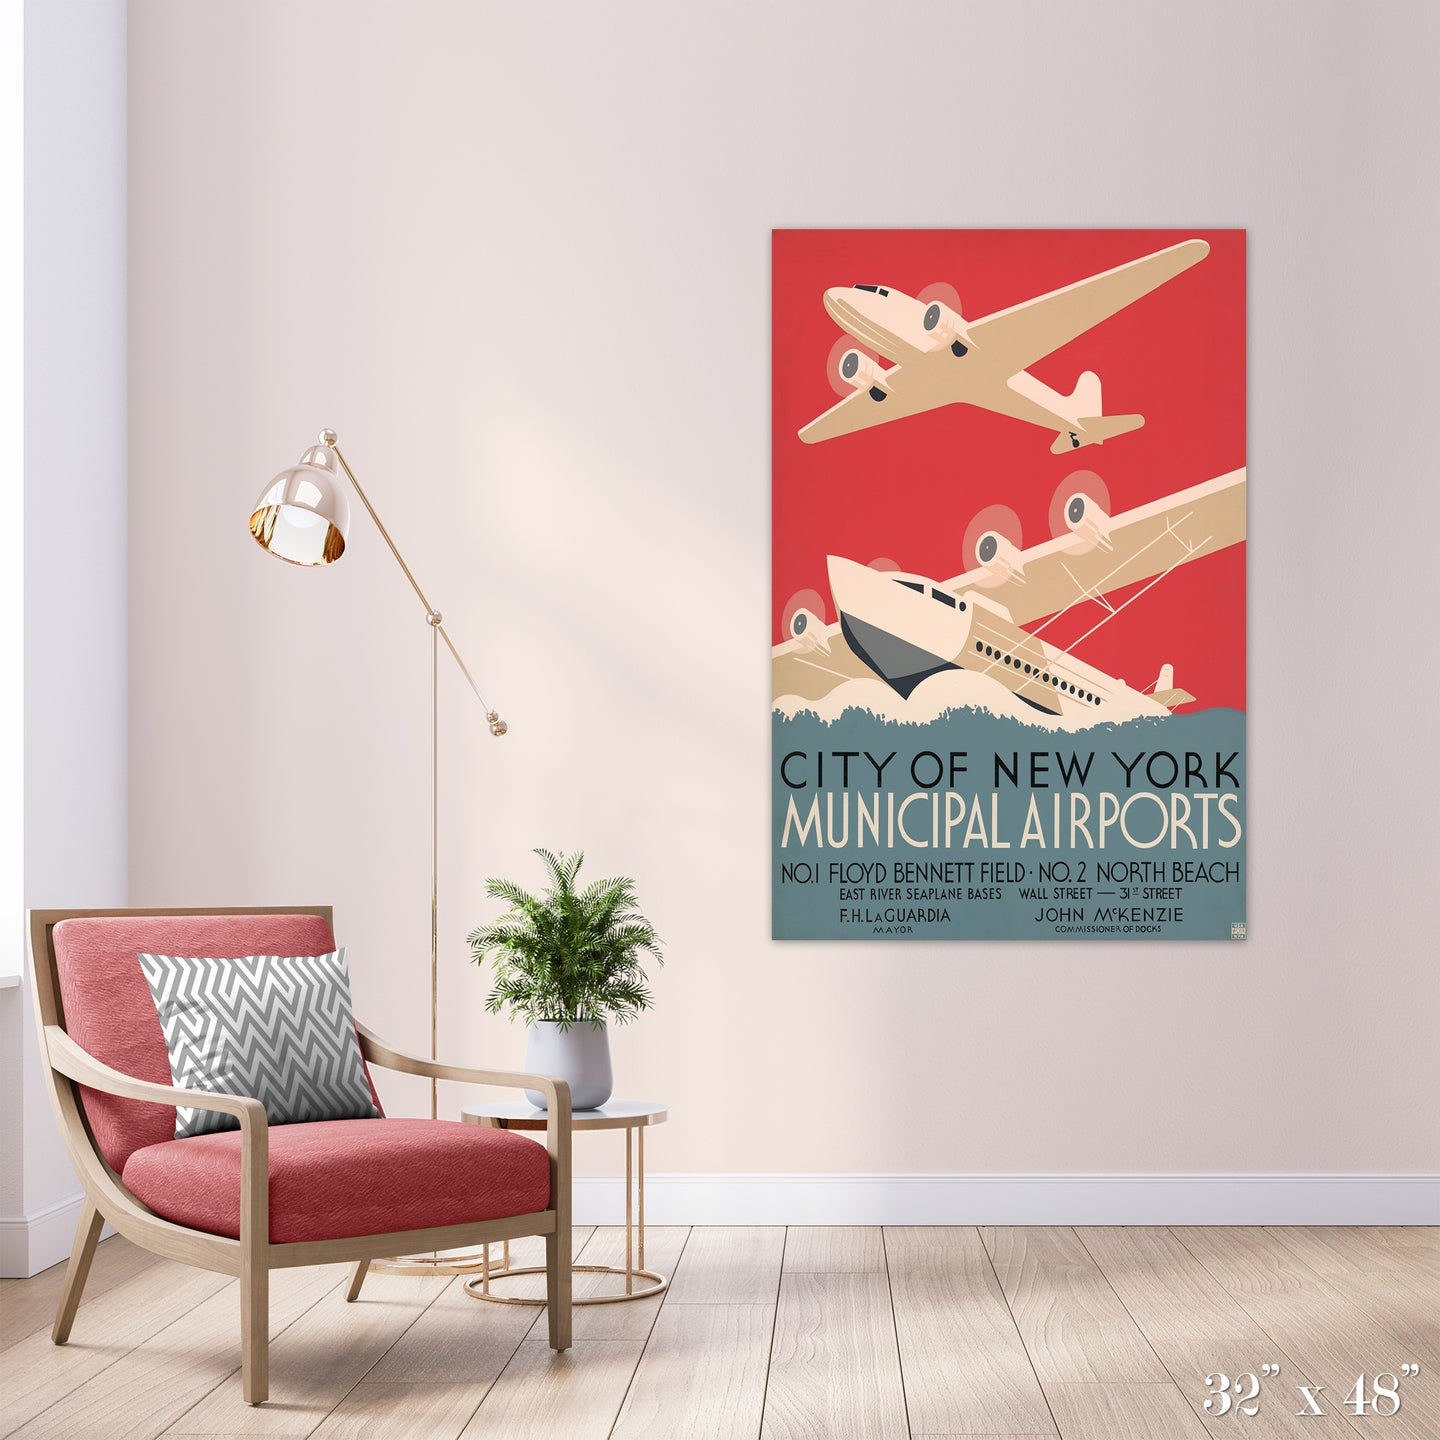 NY Airports Colossal Art Print